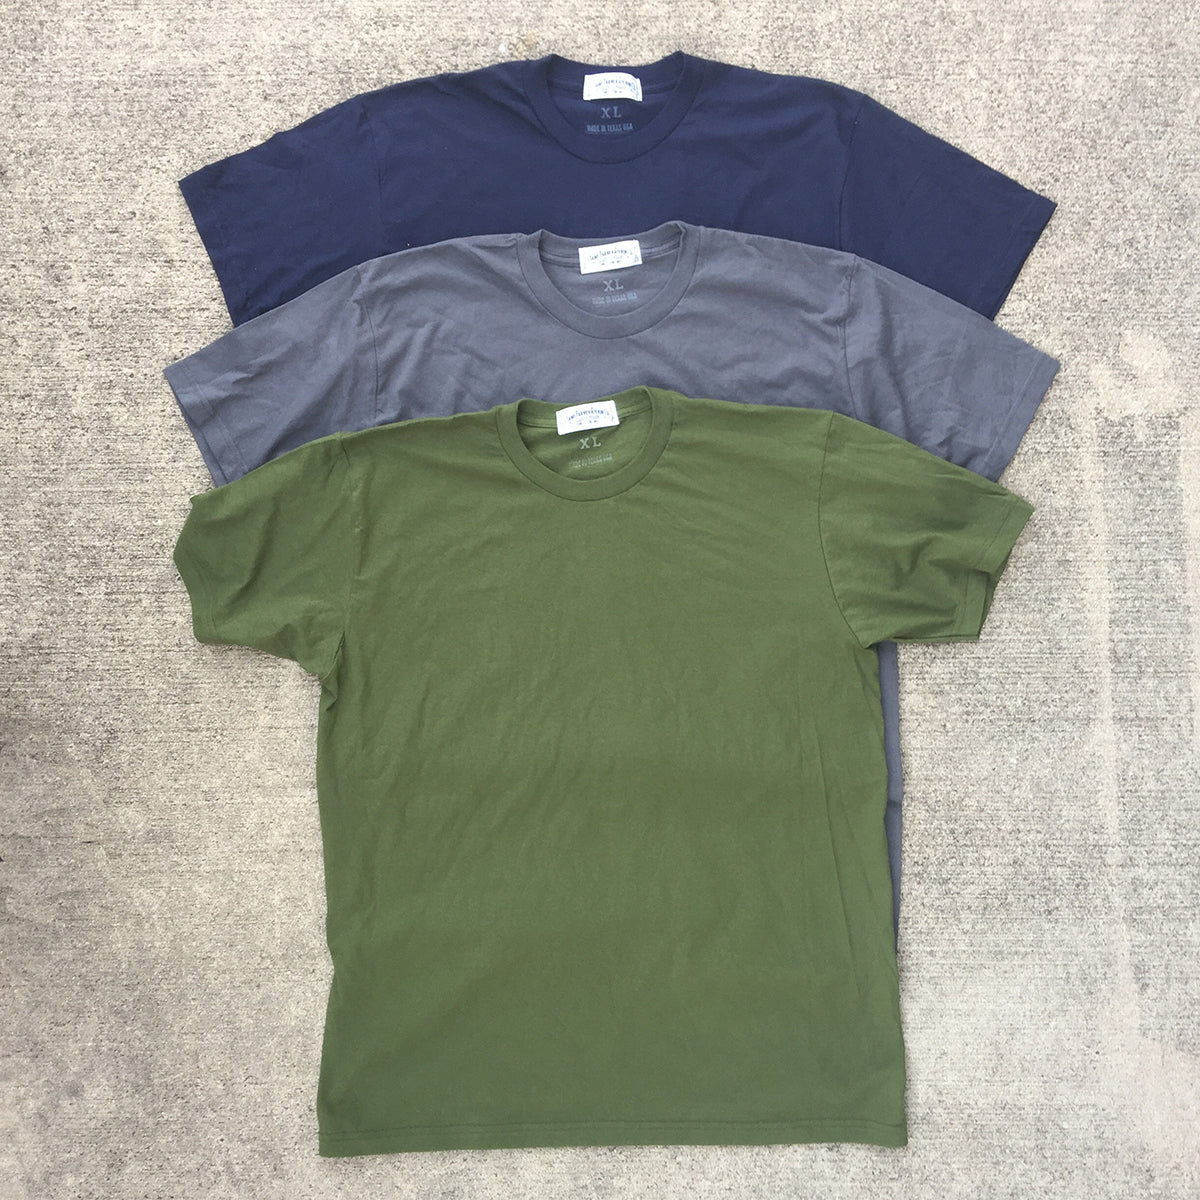 "4.4oz TEXAS MADE Tee CREW Neck 3 Pack Special ""PICK YOUR OWN 3 COLORS"""